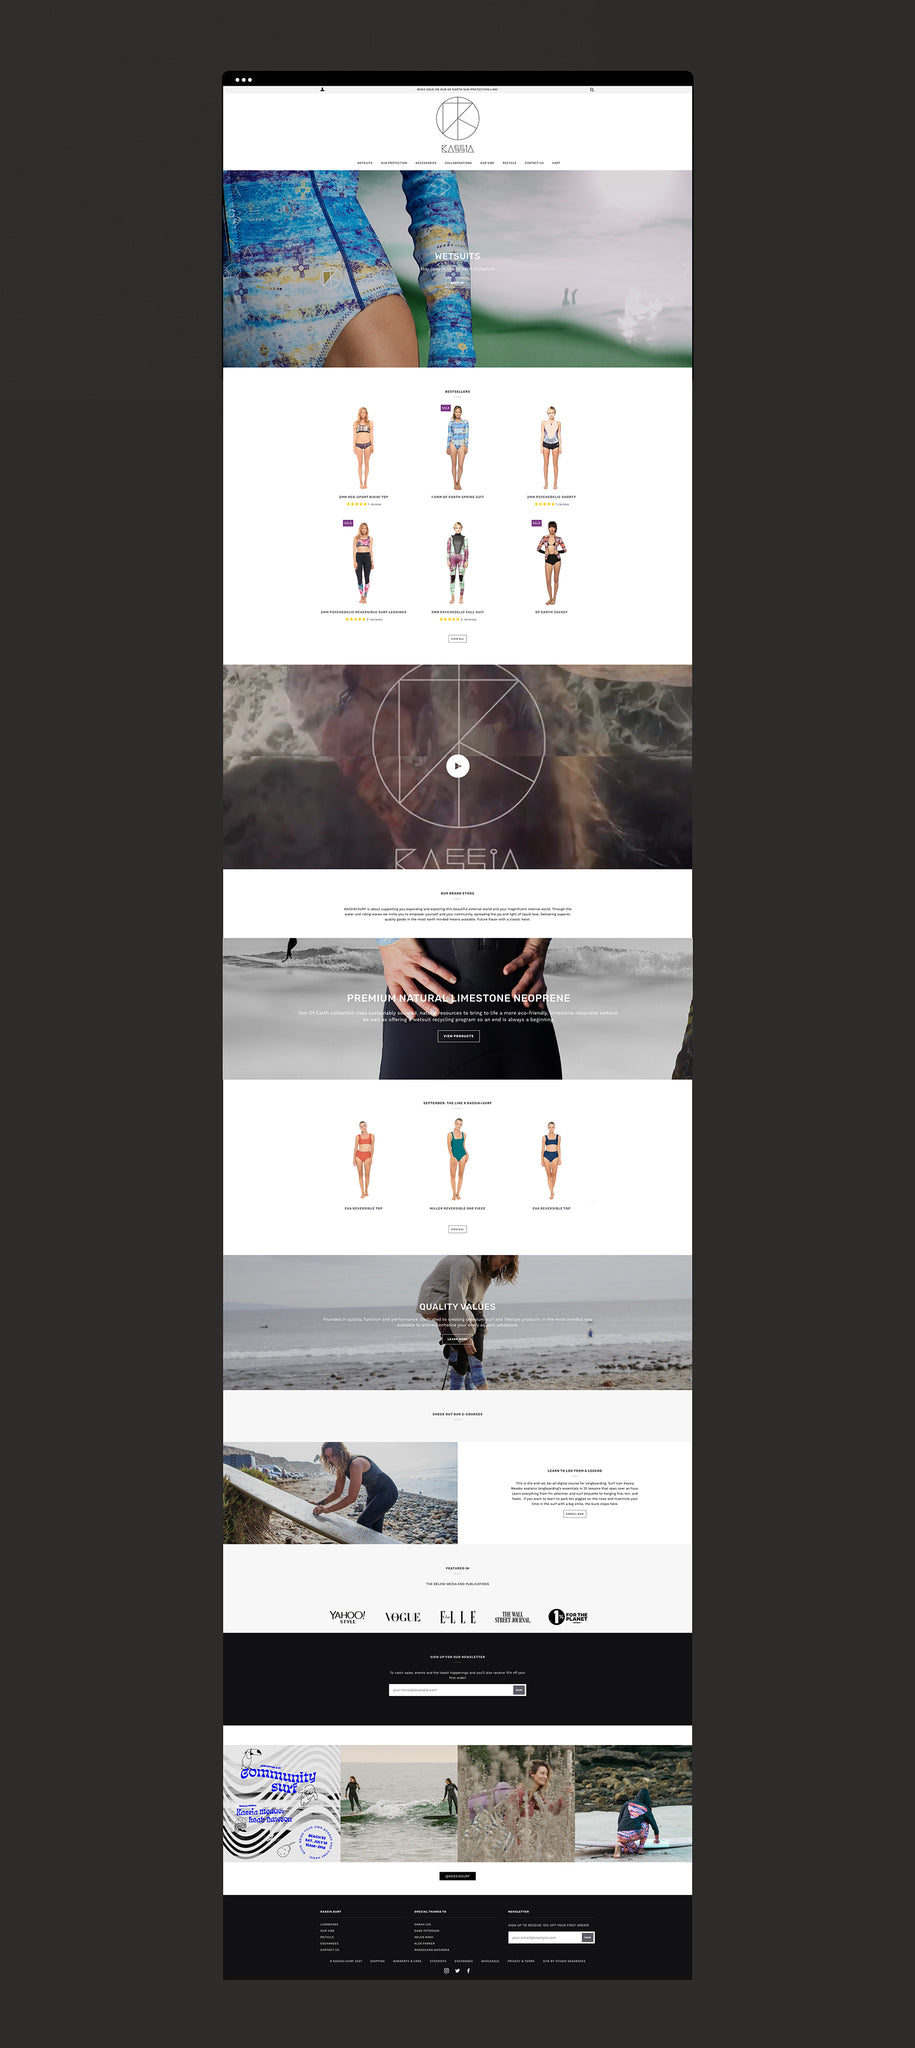 Kassia Surf Shopify website by Studio Seagraves